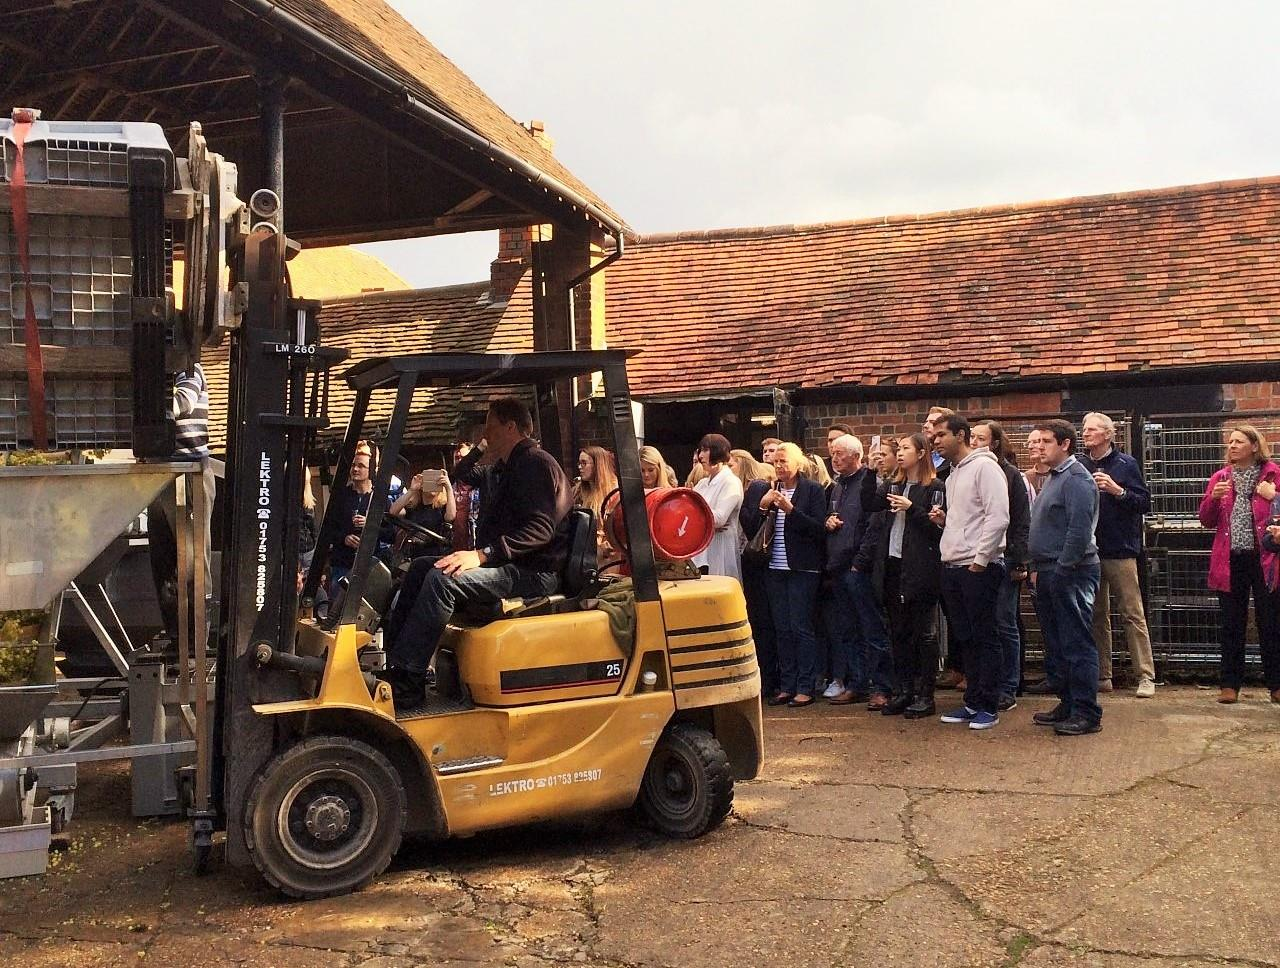 Saturday 23rd May 2020 at 2 pm - Vineyard Tour & Wine Tasting